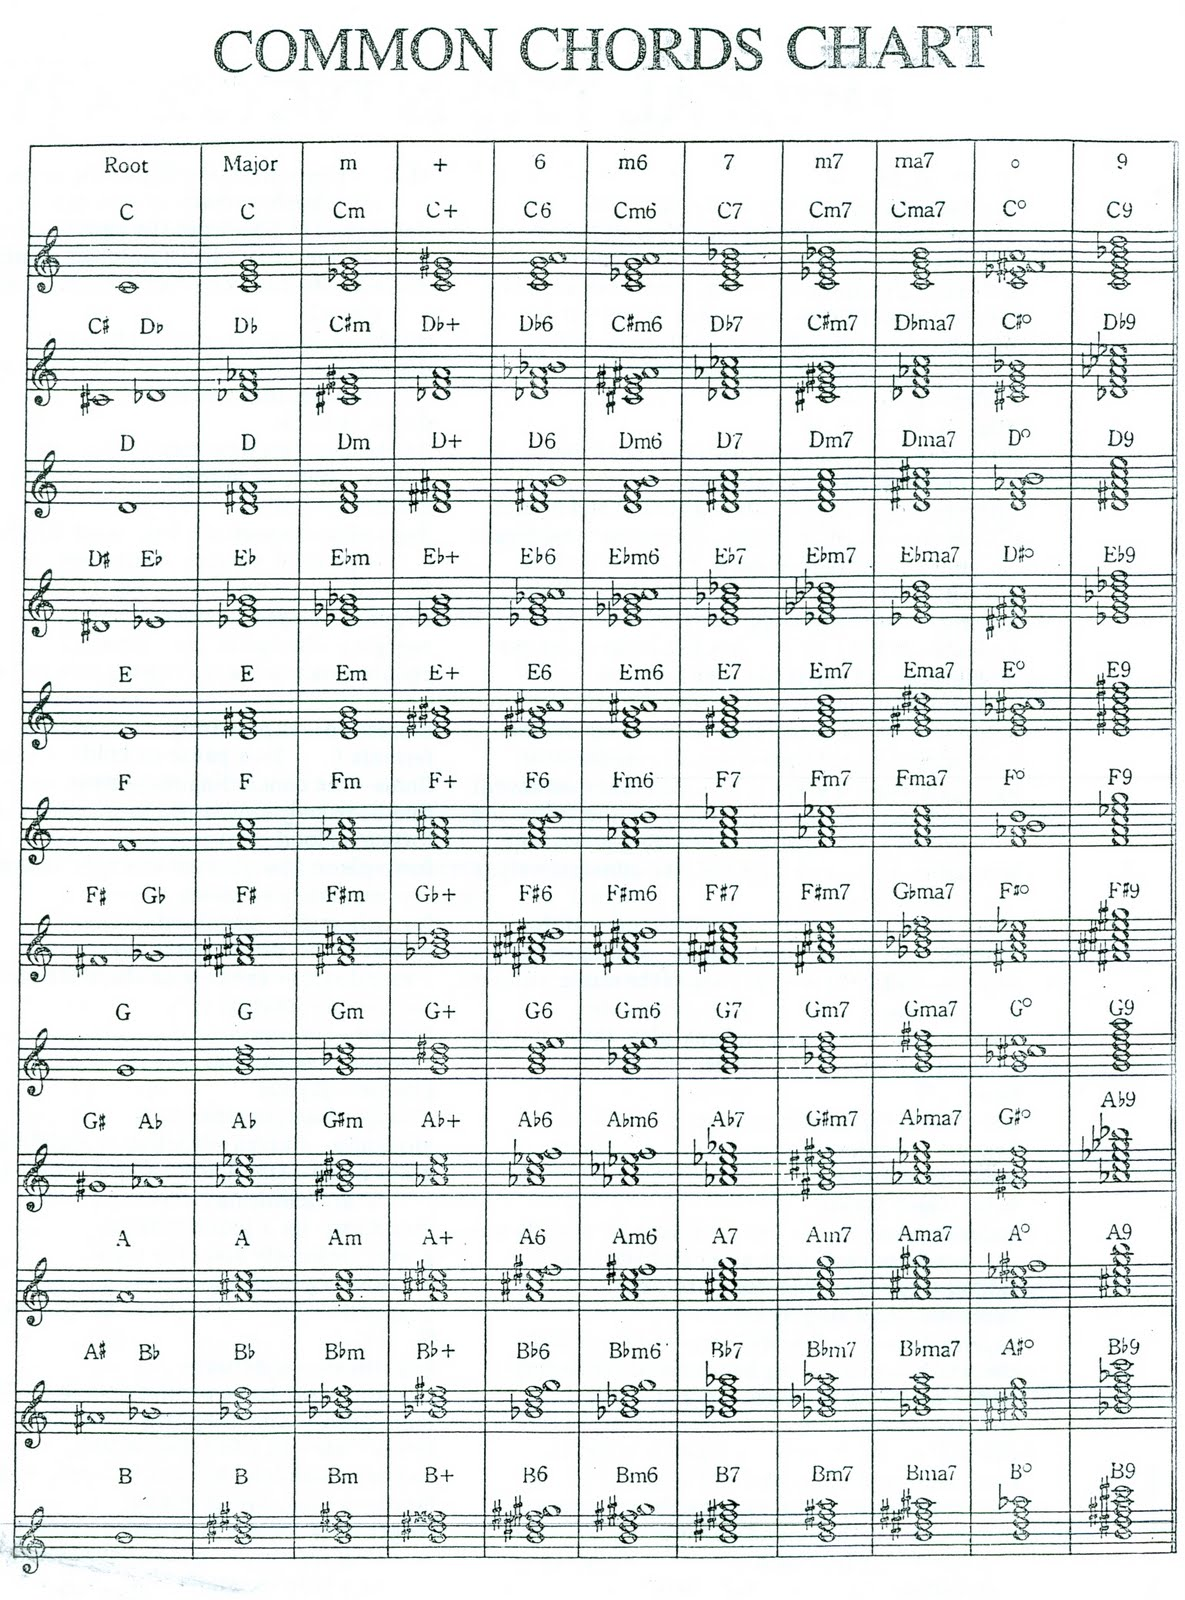 Transcendence Through Music Learning To Read Music With Chords